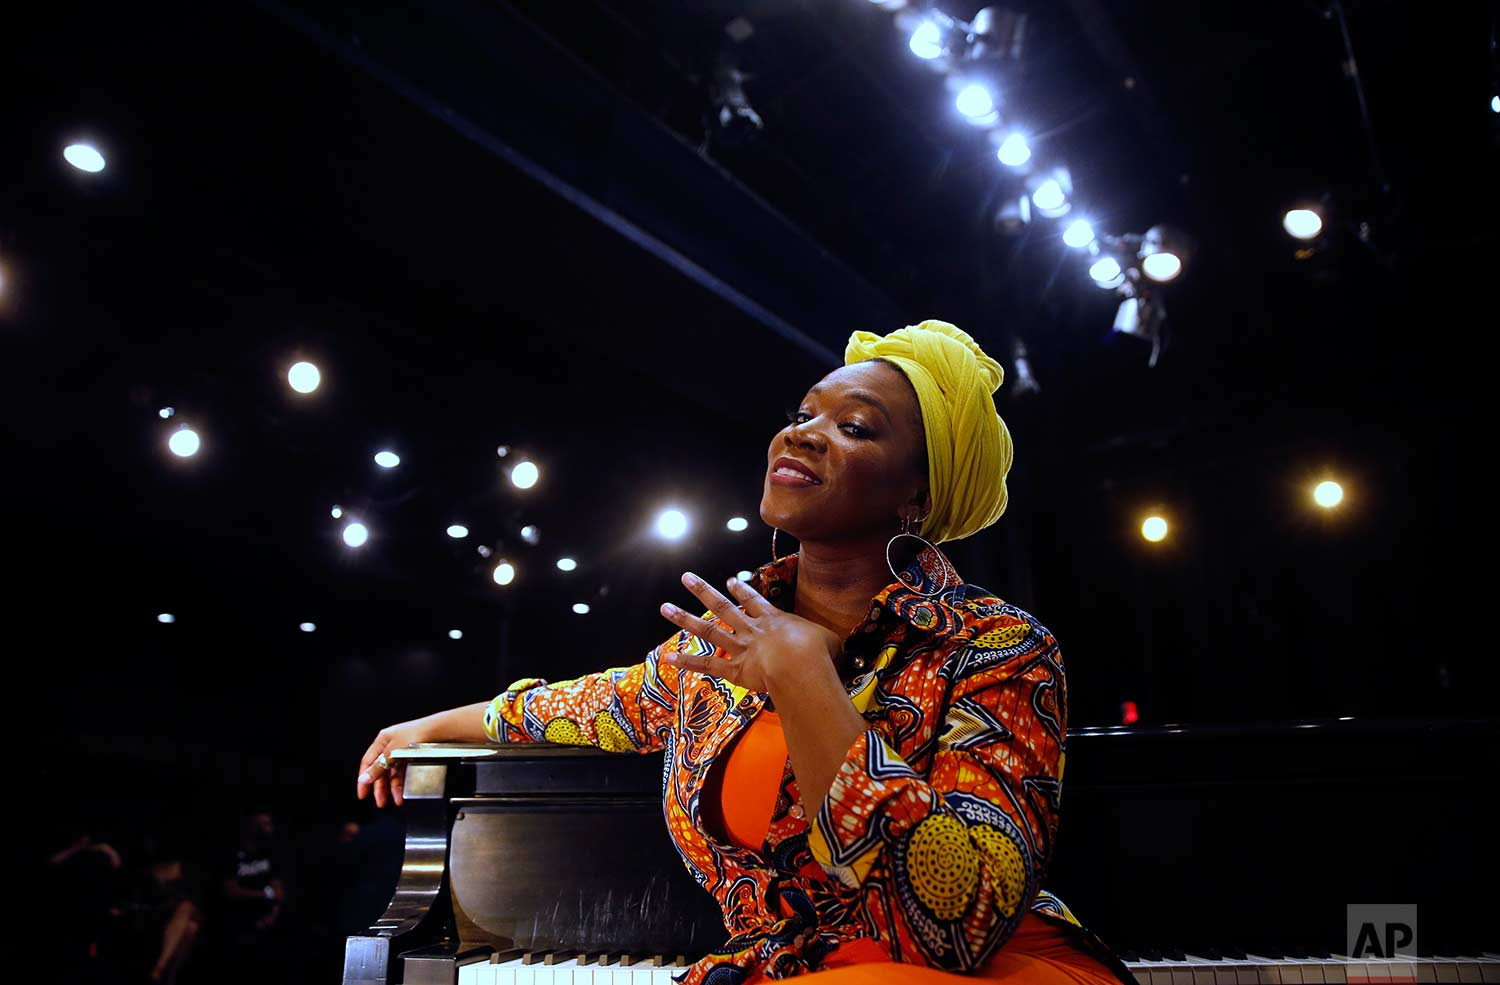 India.Arie speaks during an interview with the Associated Press, after performing at an Essence Festival gala in New Orleans, Thursday, June 29, 2017. (AP Photo/Gerald Herbert)